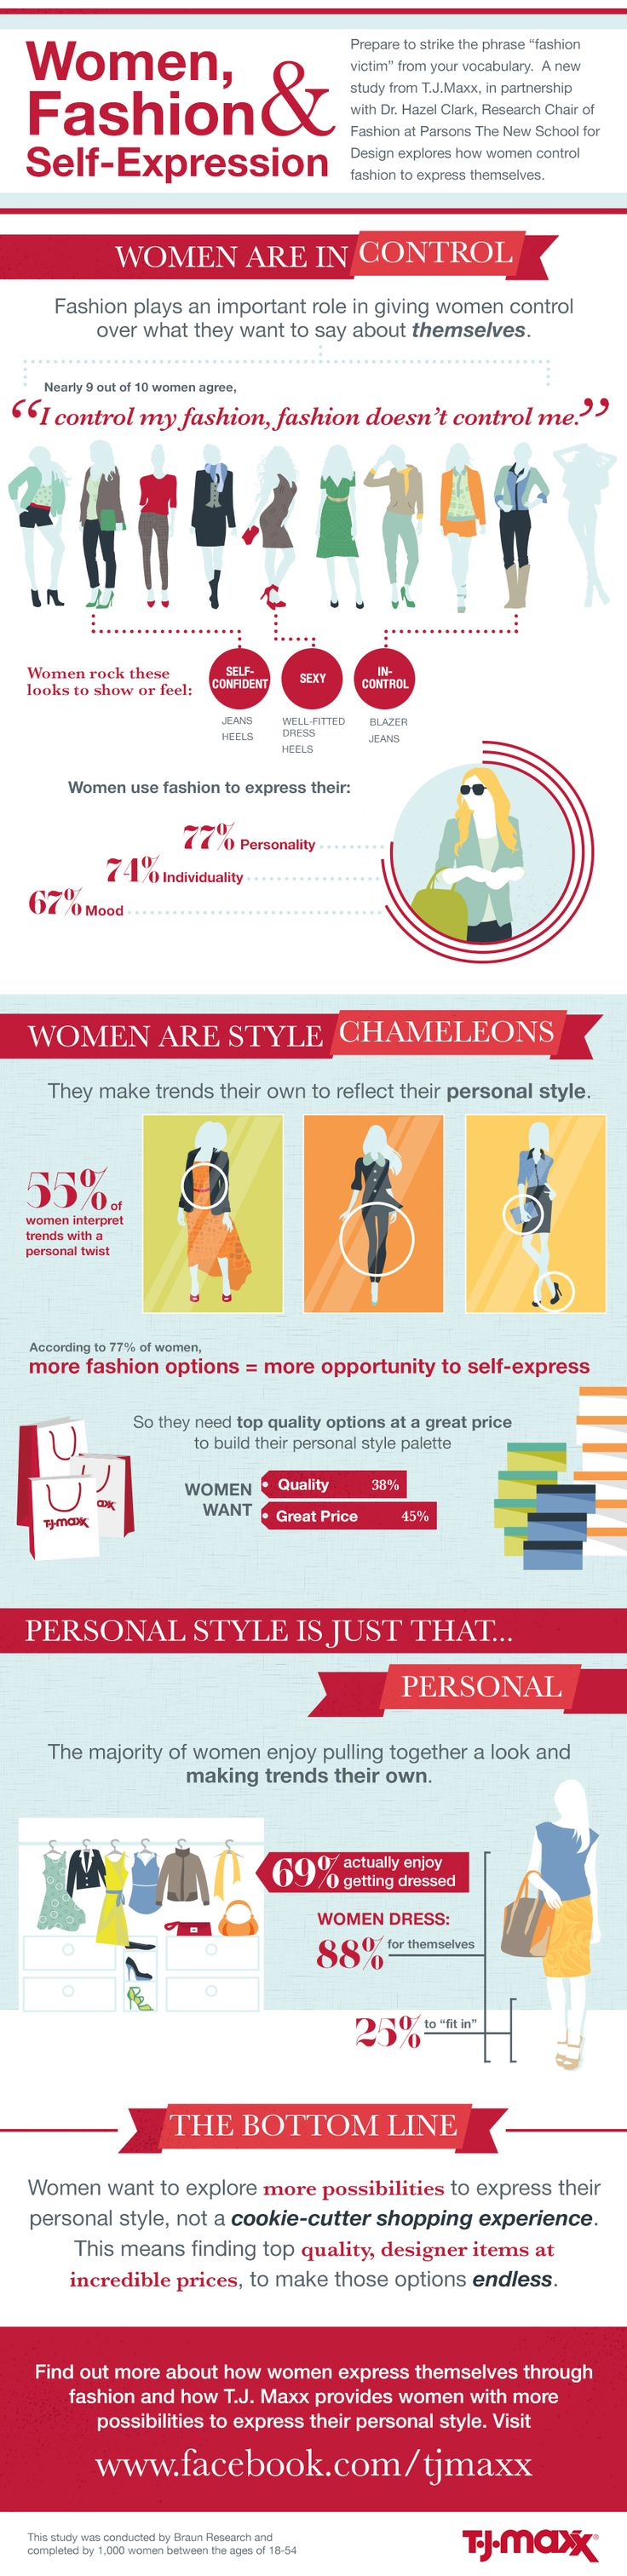 We definitely have some fashion lovers here at Lemonly, so it was right up our alley to do a fashion infographic with T.J. Maxx. Their newest fashion